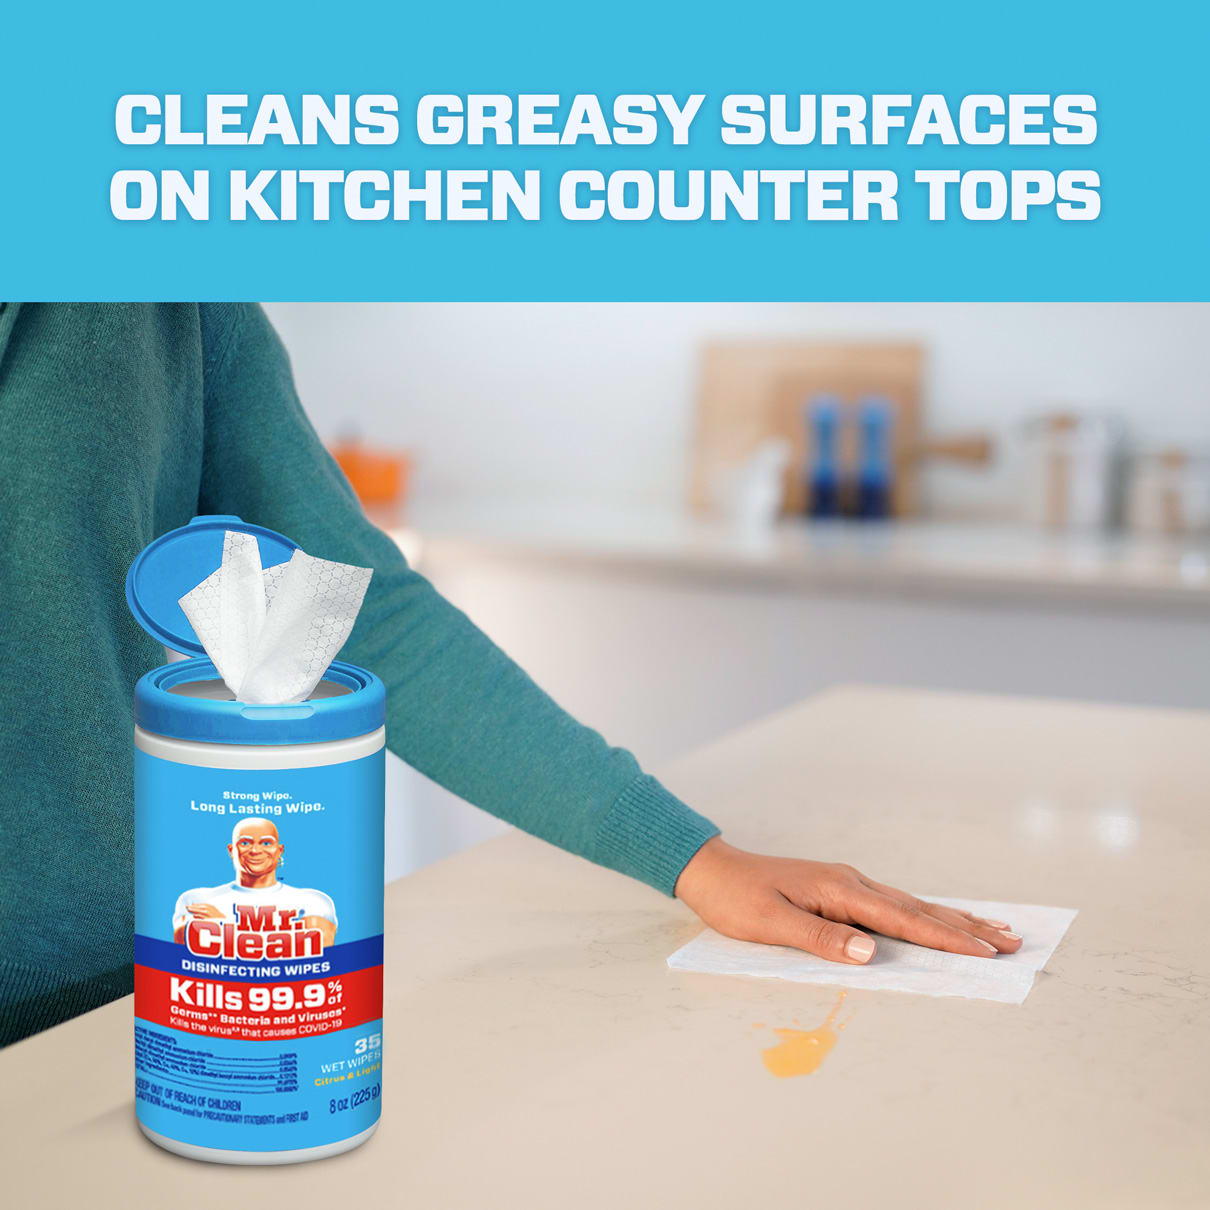 Mr. Clean cleans greasy surfaces on kitchen counter tops